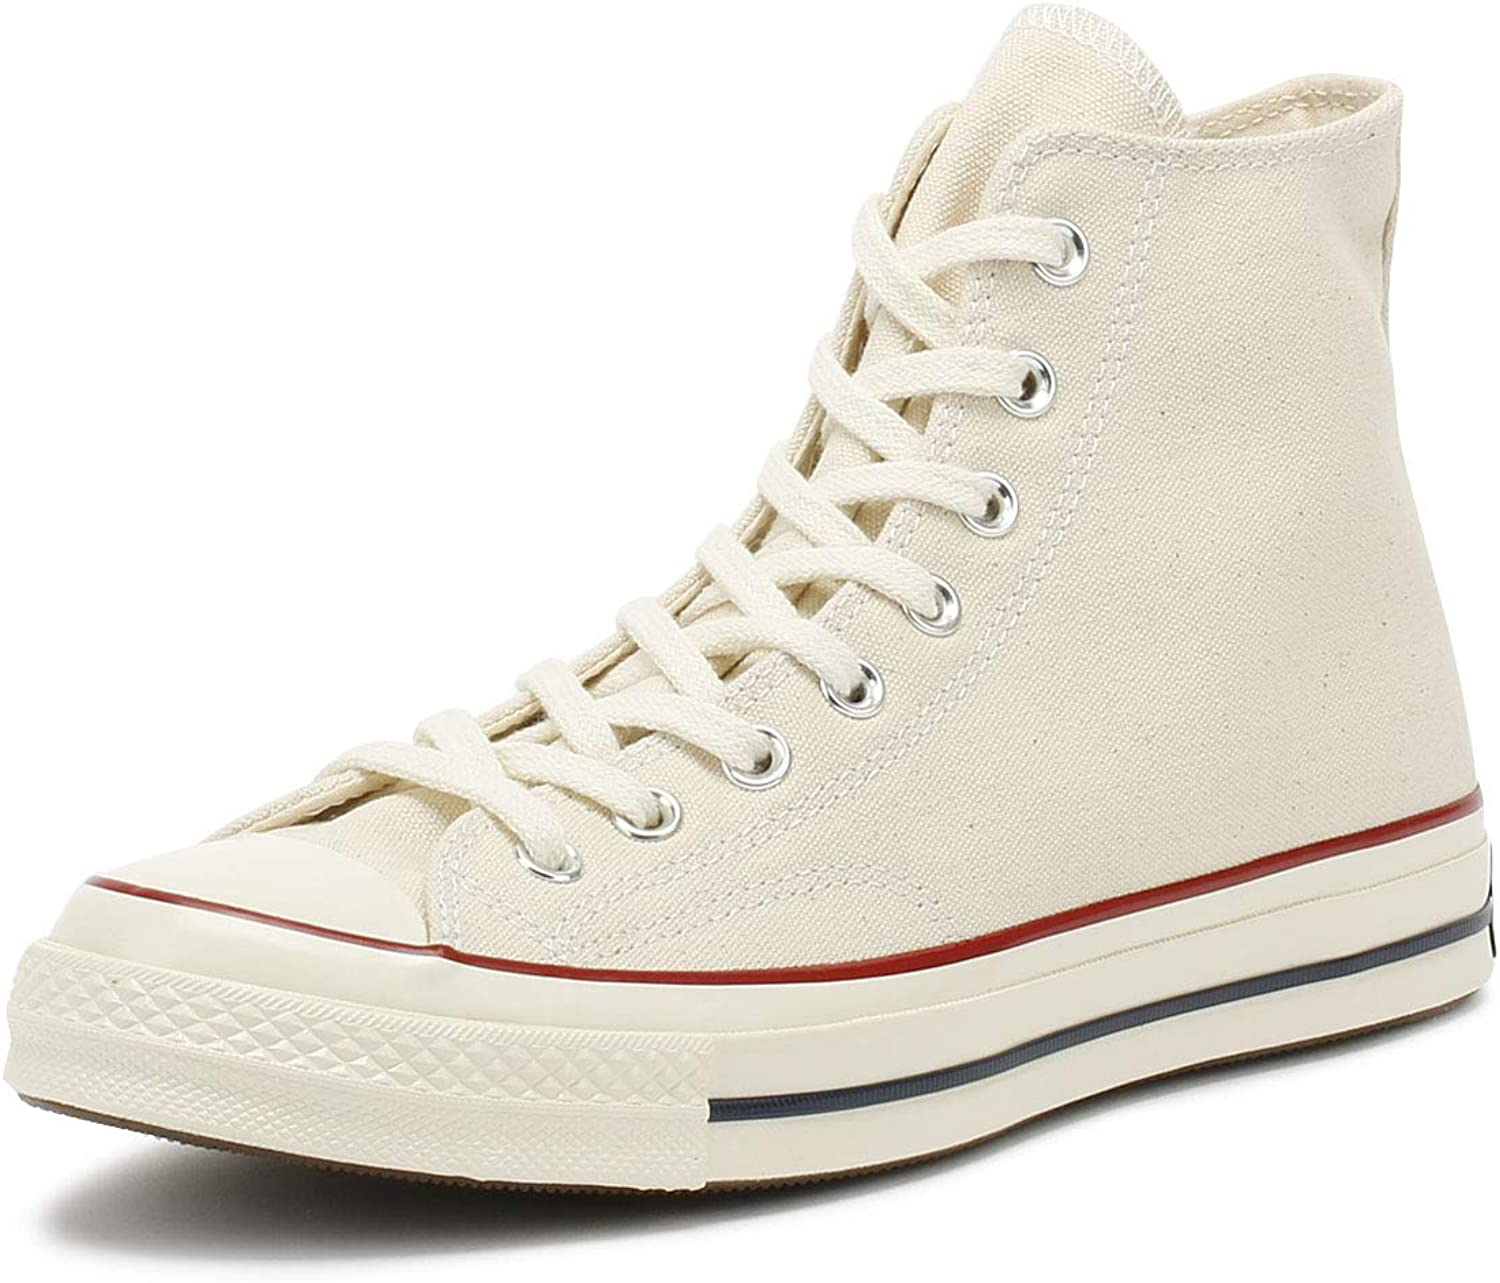 CONVERSE shoes men high sneakers 162053C CHUCK 70 HI size 40 Cream